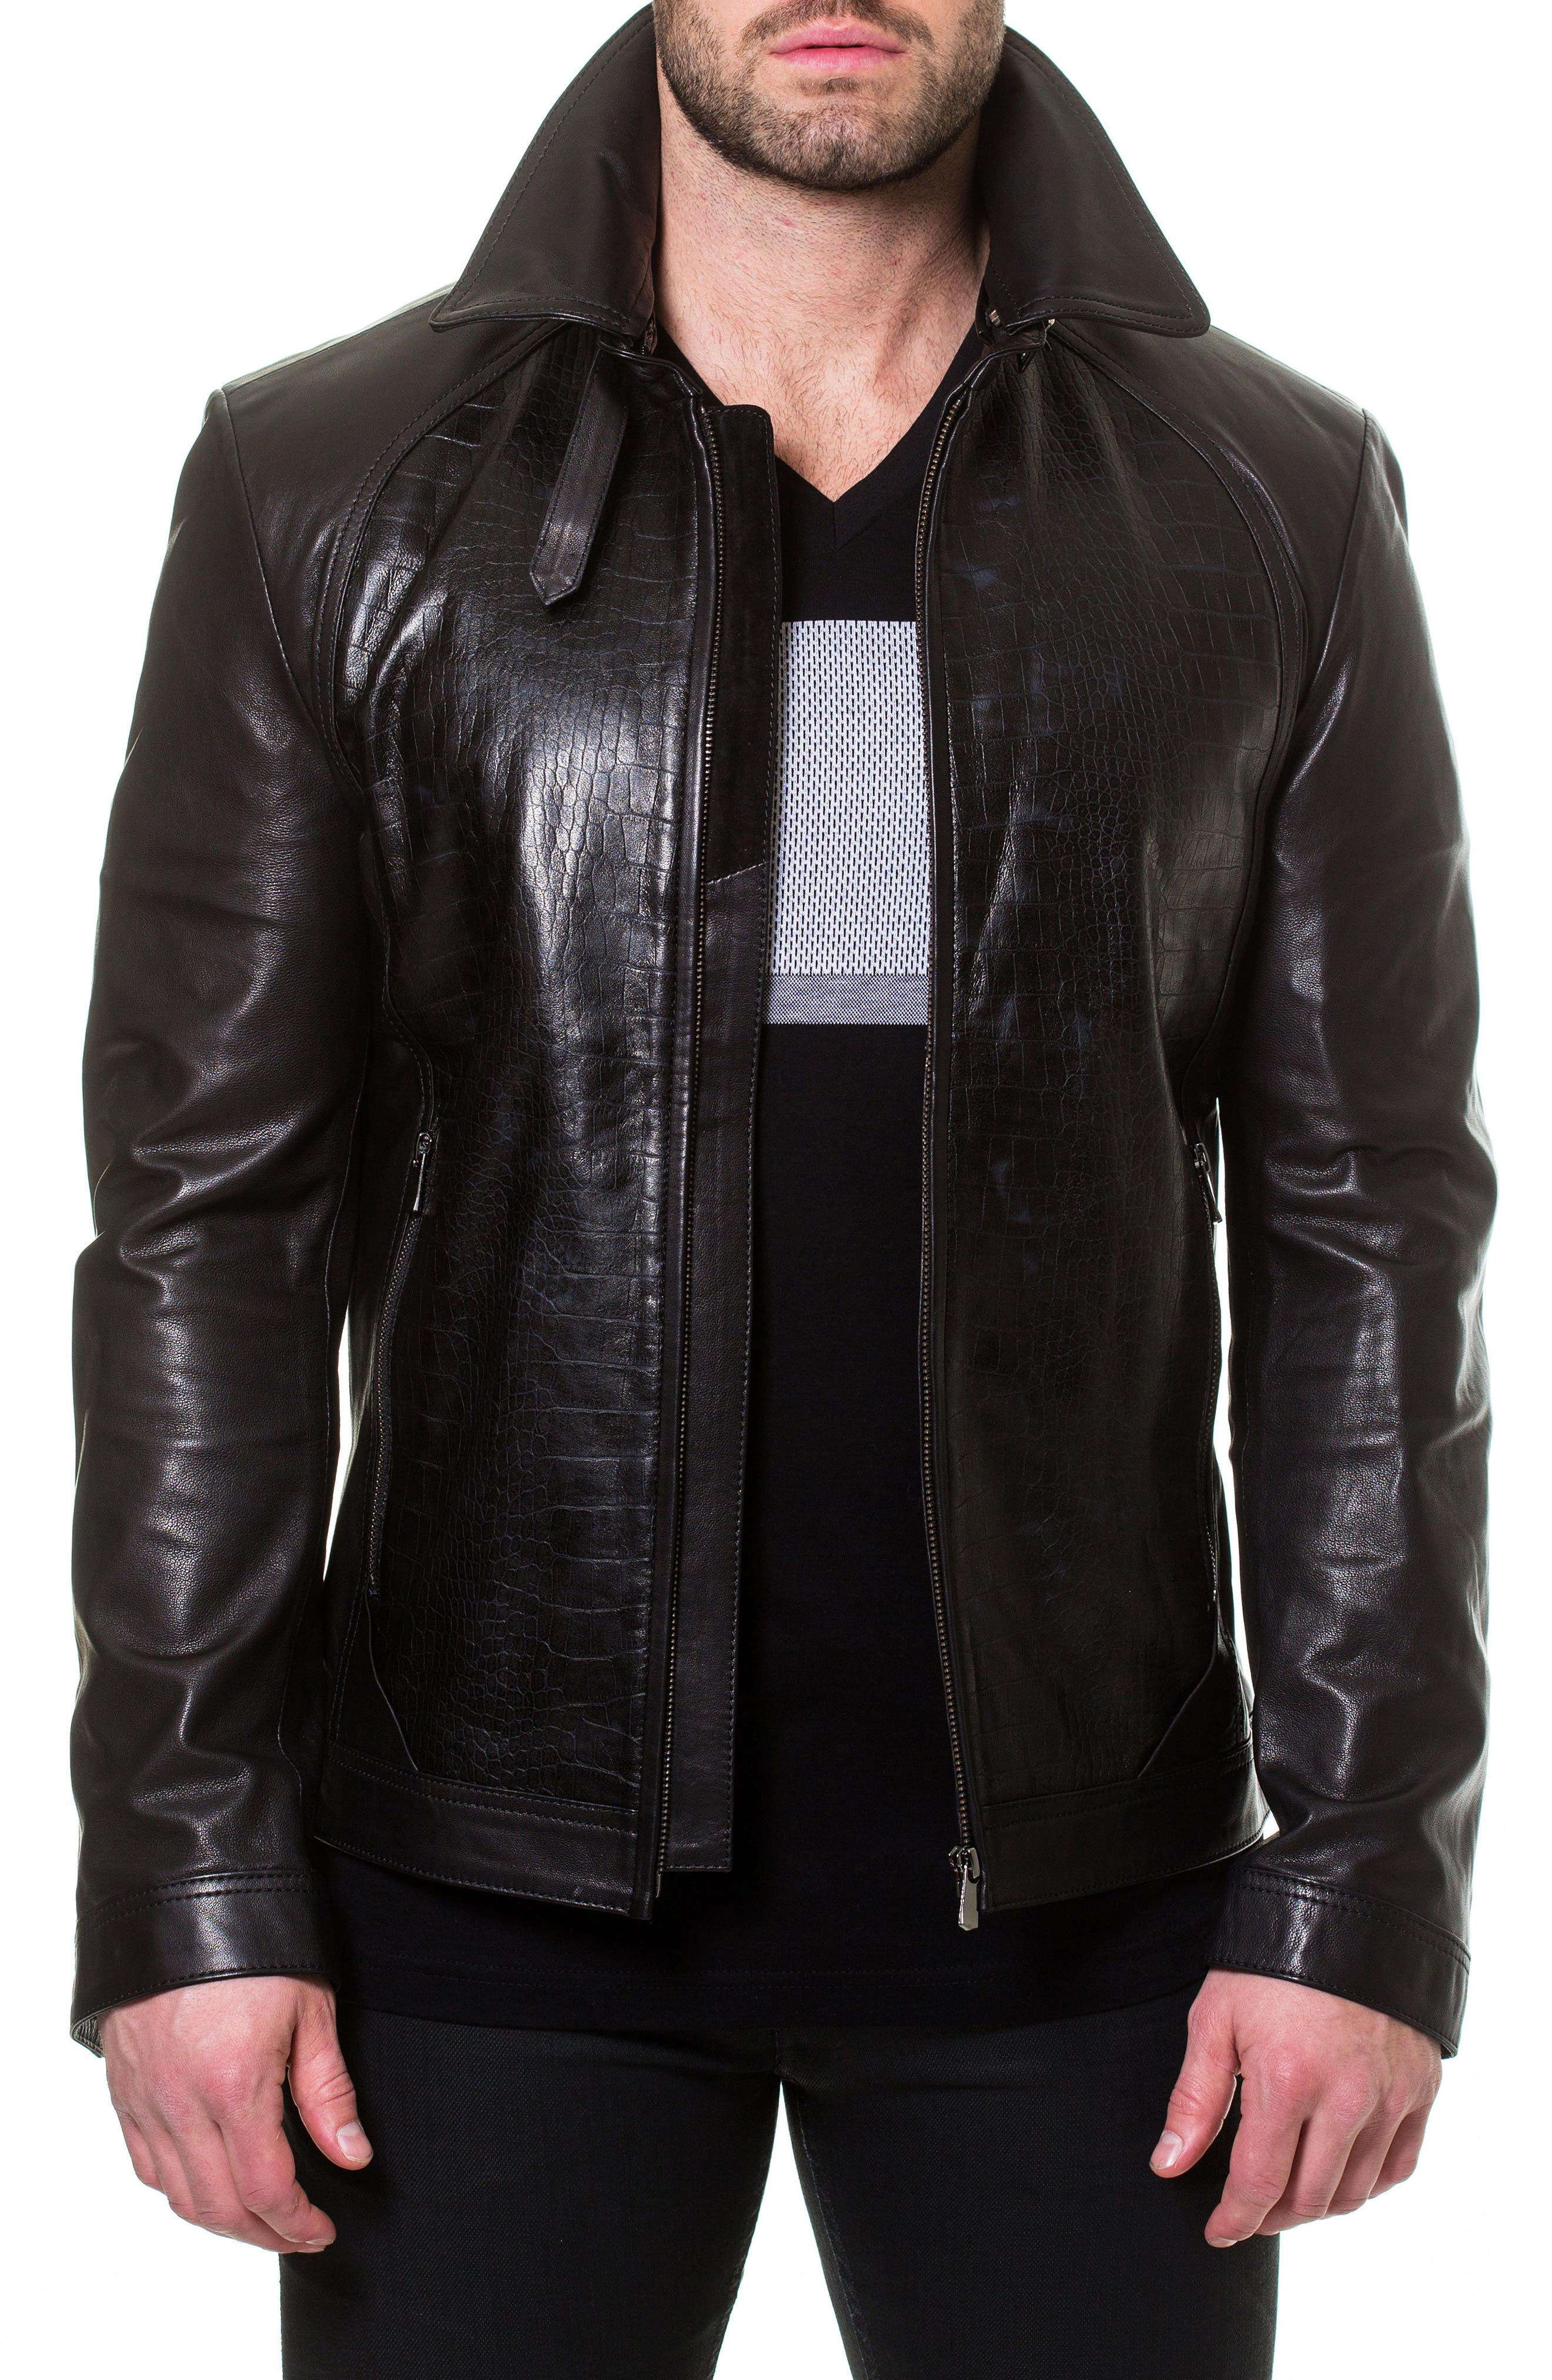 Maceoo Collared Leather Jacket